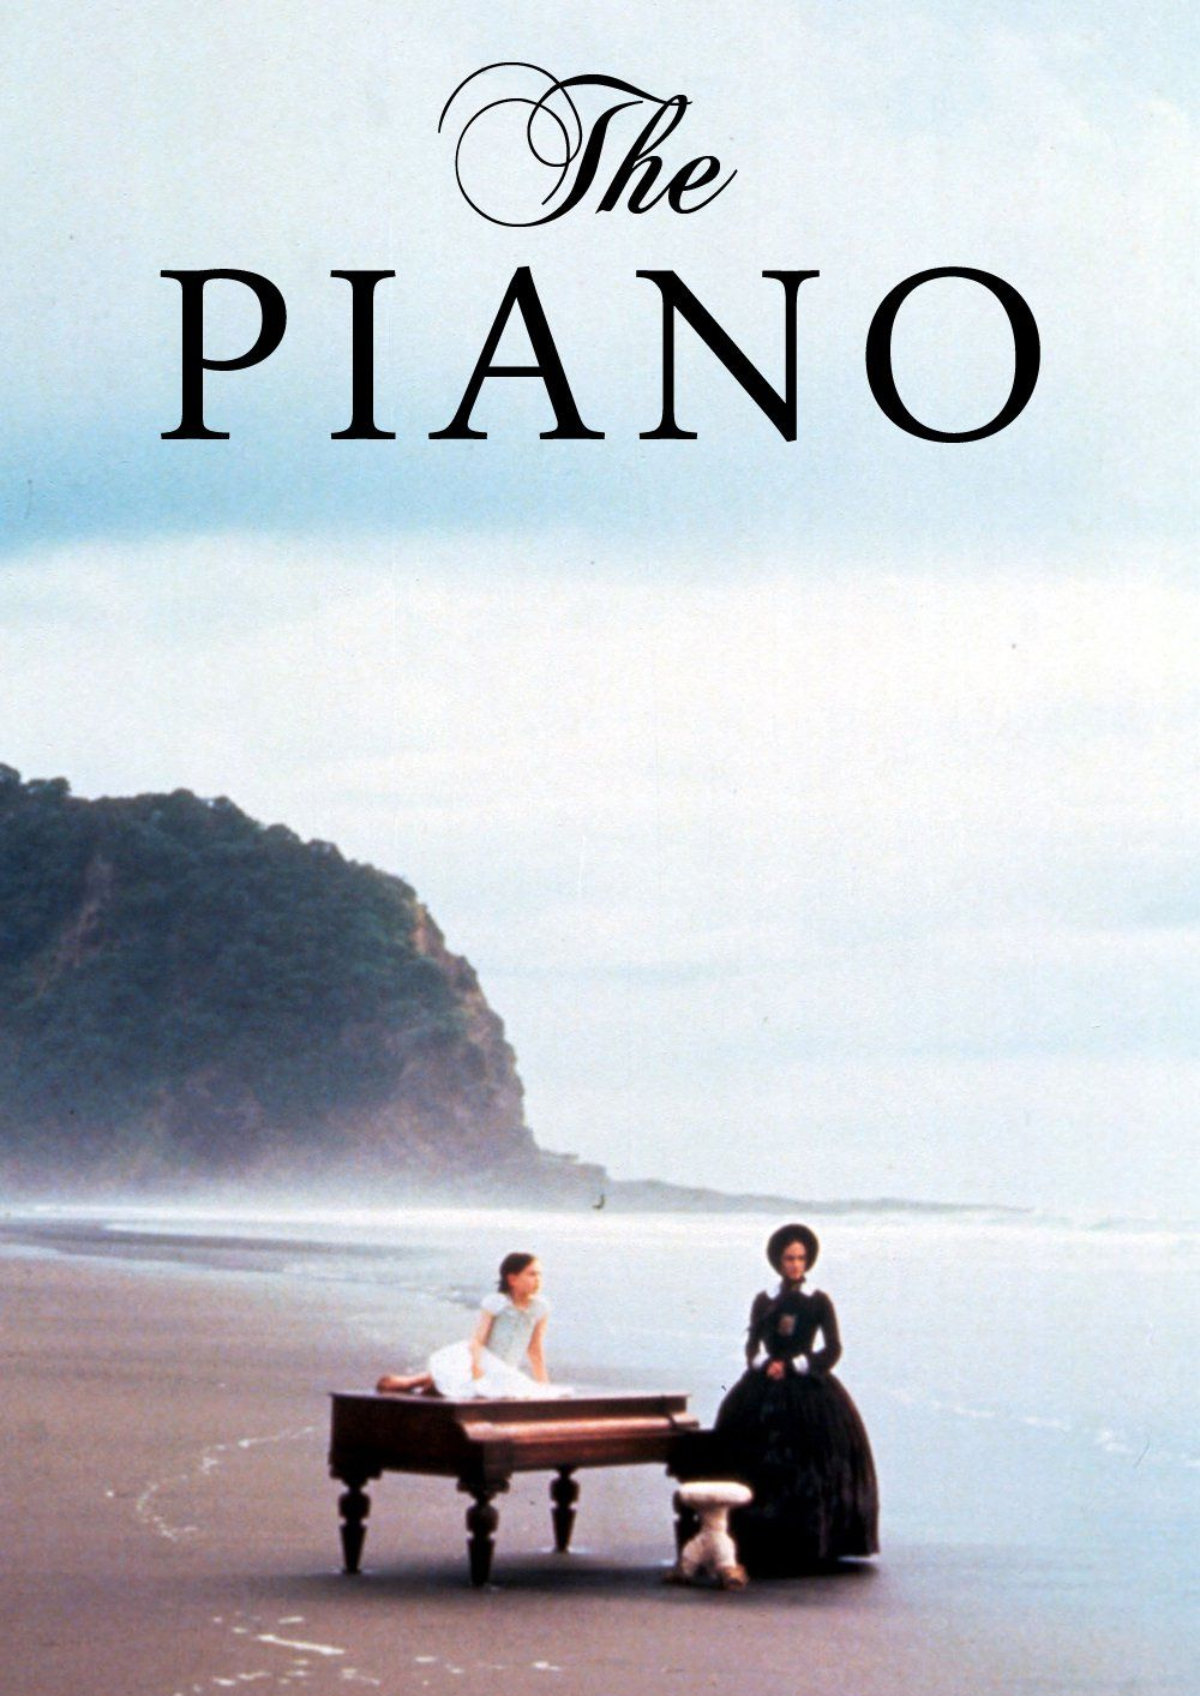 'The Piano' movie poster